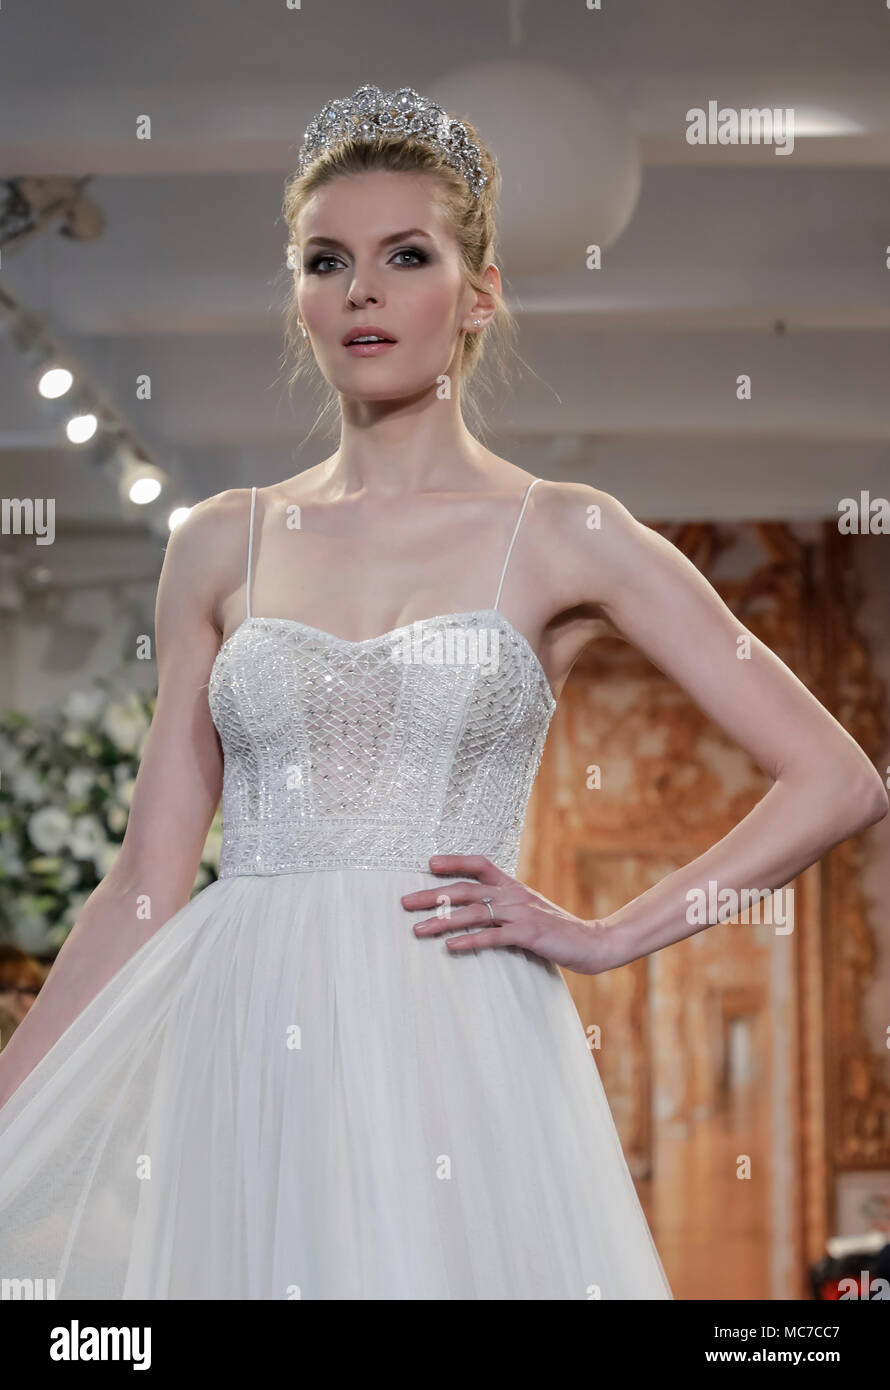 New York, USA. 12th Apr, 2018. A model walks the runway at the Theia runway show during New York Bridal Week at the Theia Showroom, Manhattan Credit: Sam Aronov/Alamy Live News - Stock Image